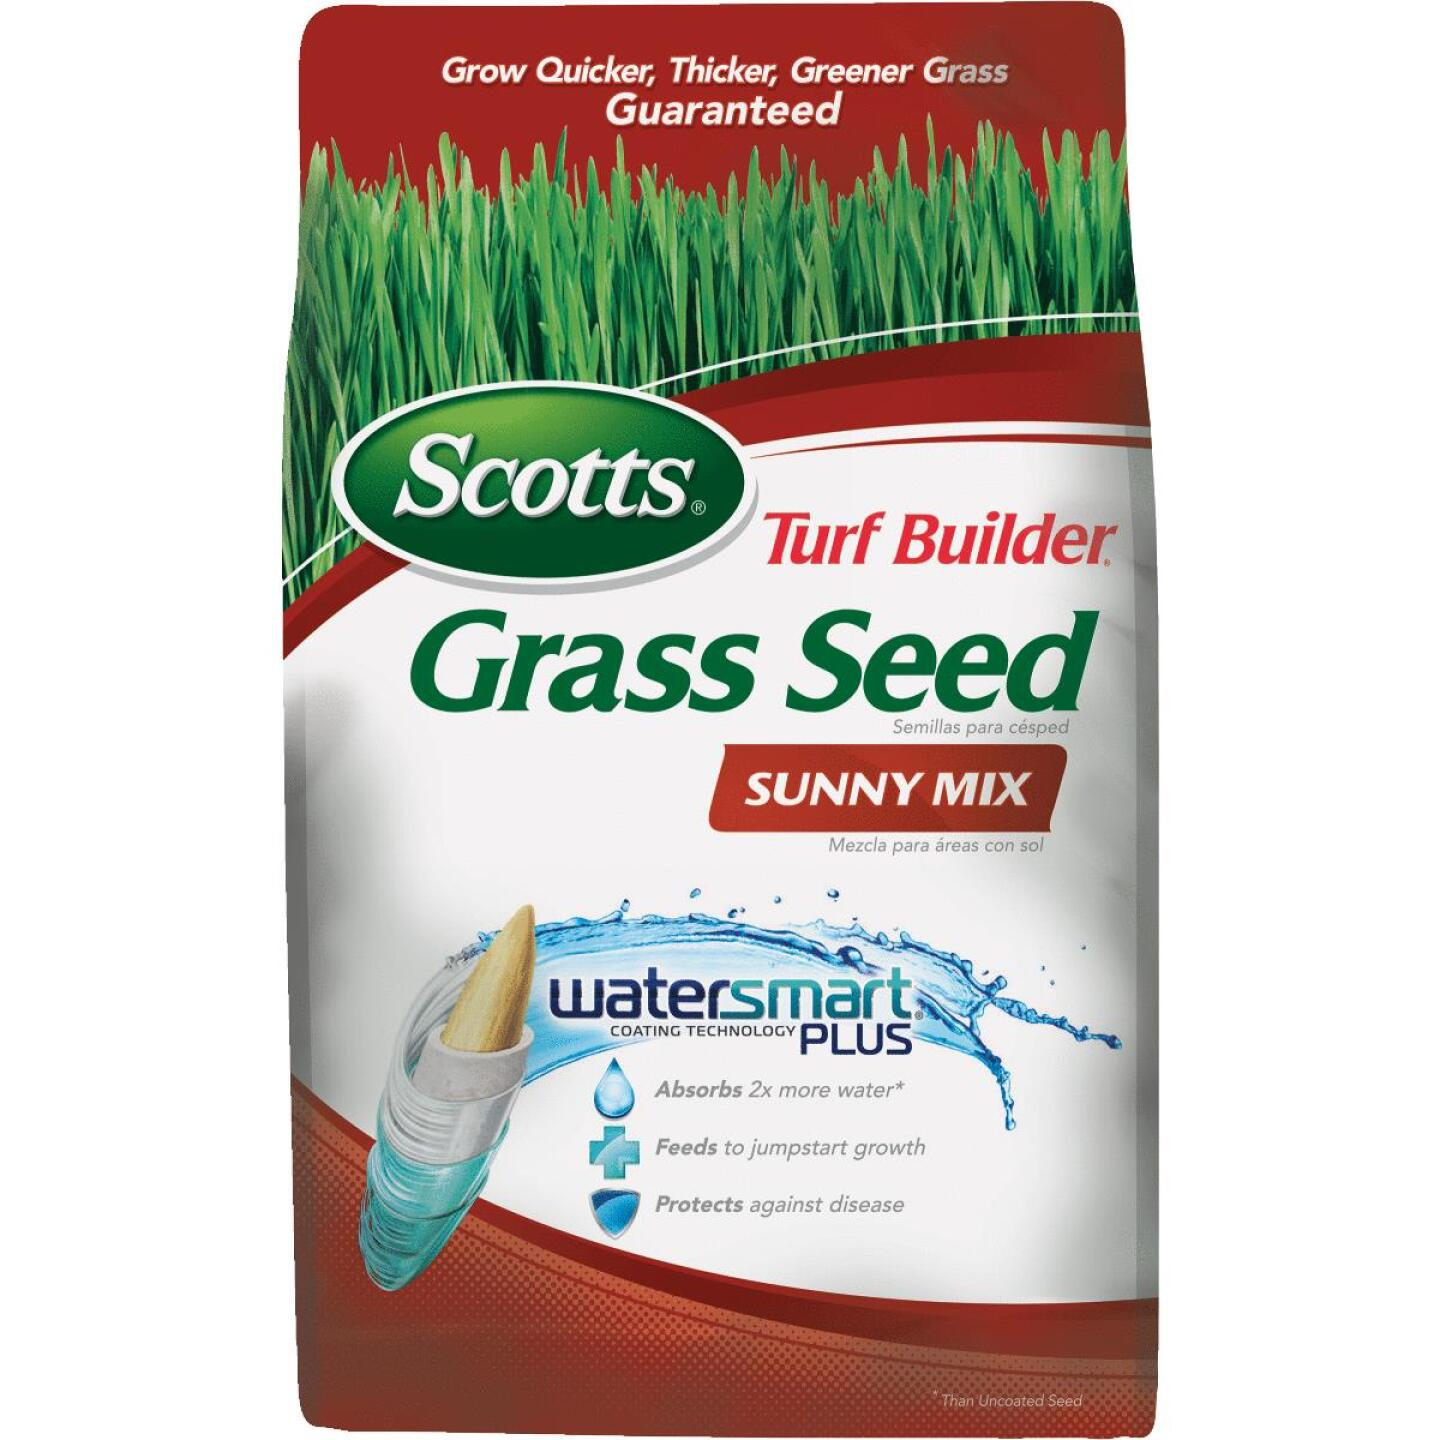 Scotts Turf Builder 3 Lb. Up To 1350 Sq. Ft. Coverage Sunny Grass Seed Image 1